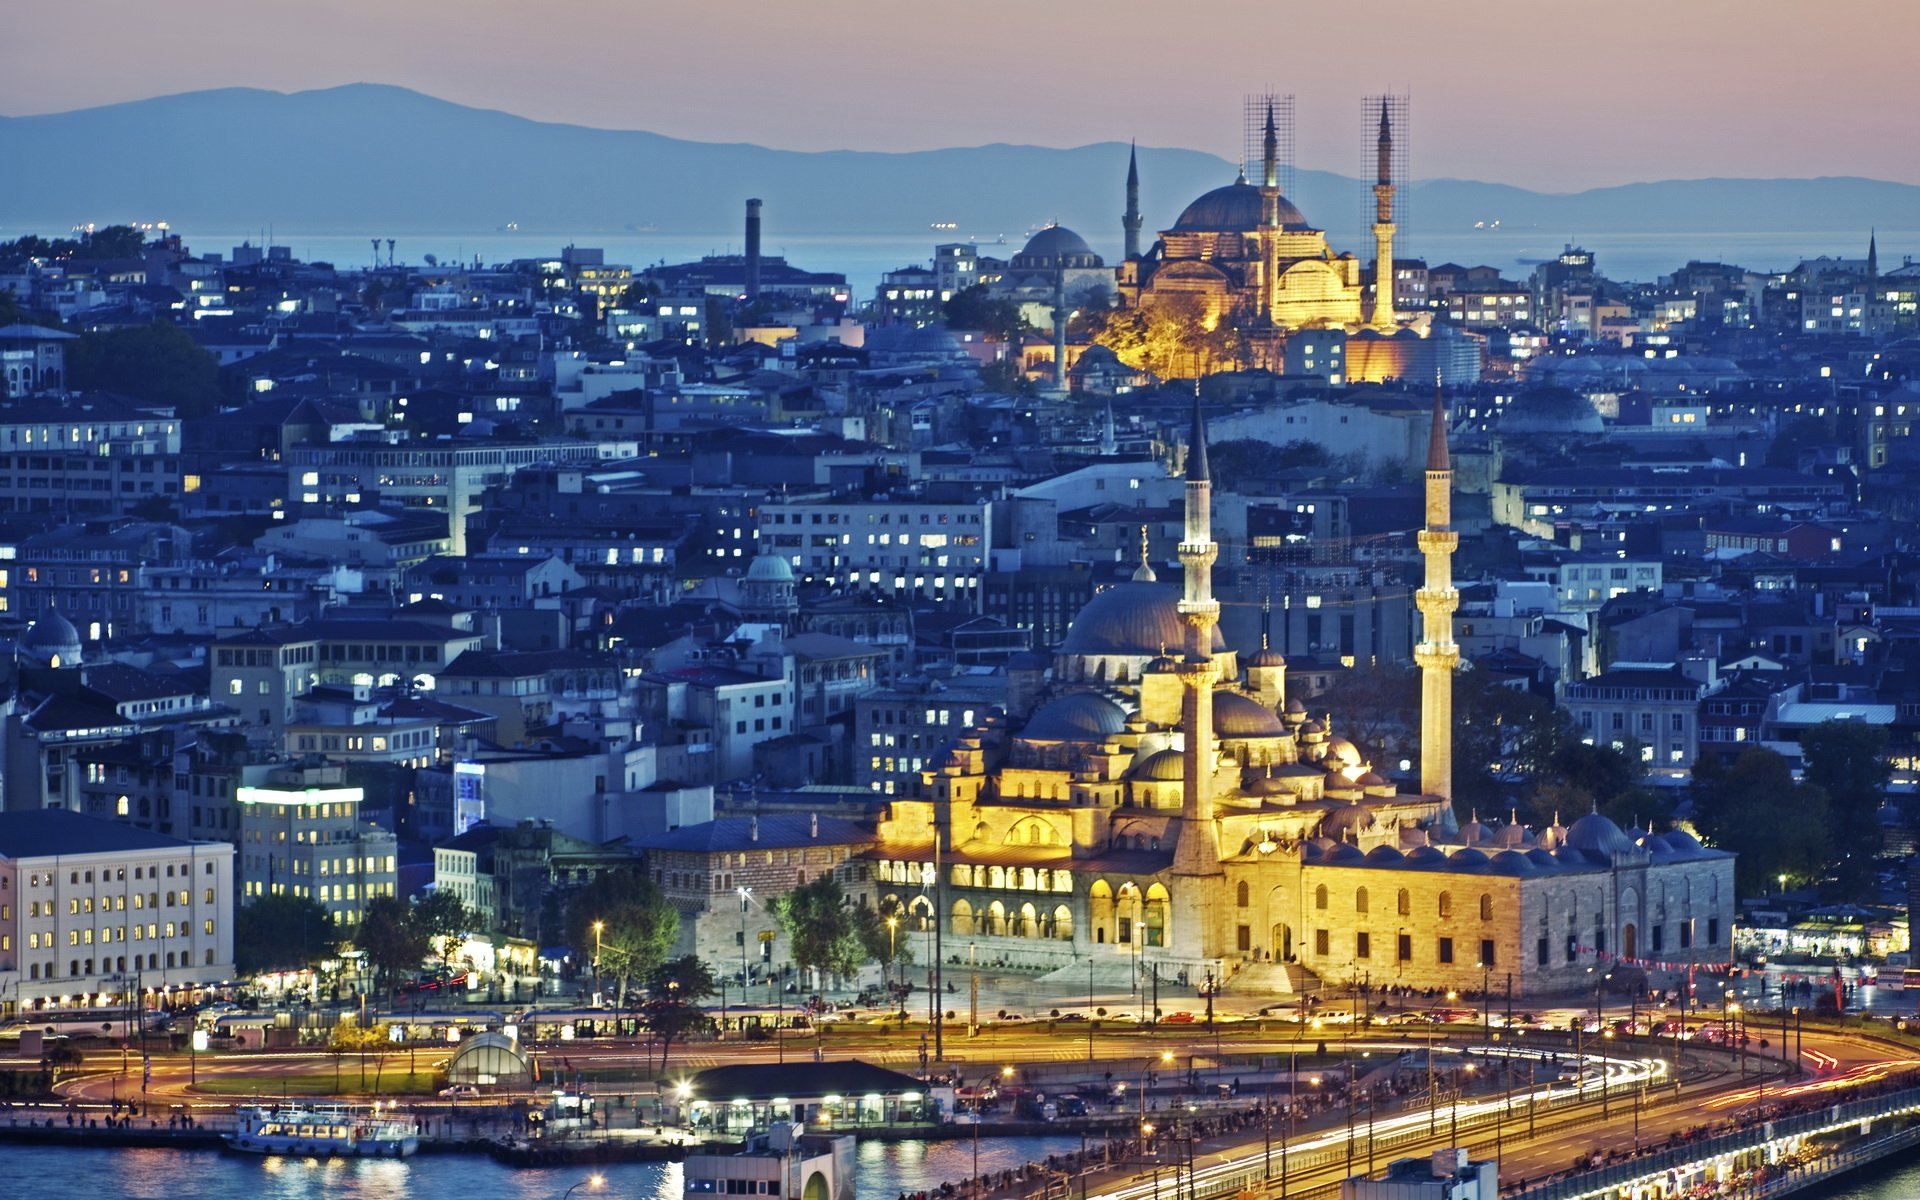 Turkey Wallpaper For Iphone Istanbul Hd Wallpaper Background Image 1920x1200 Id